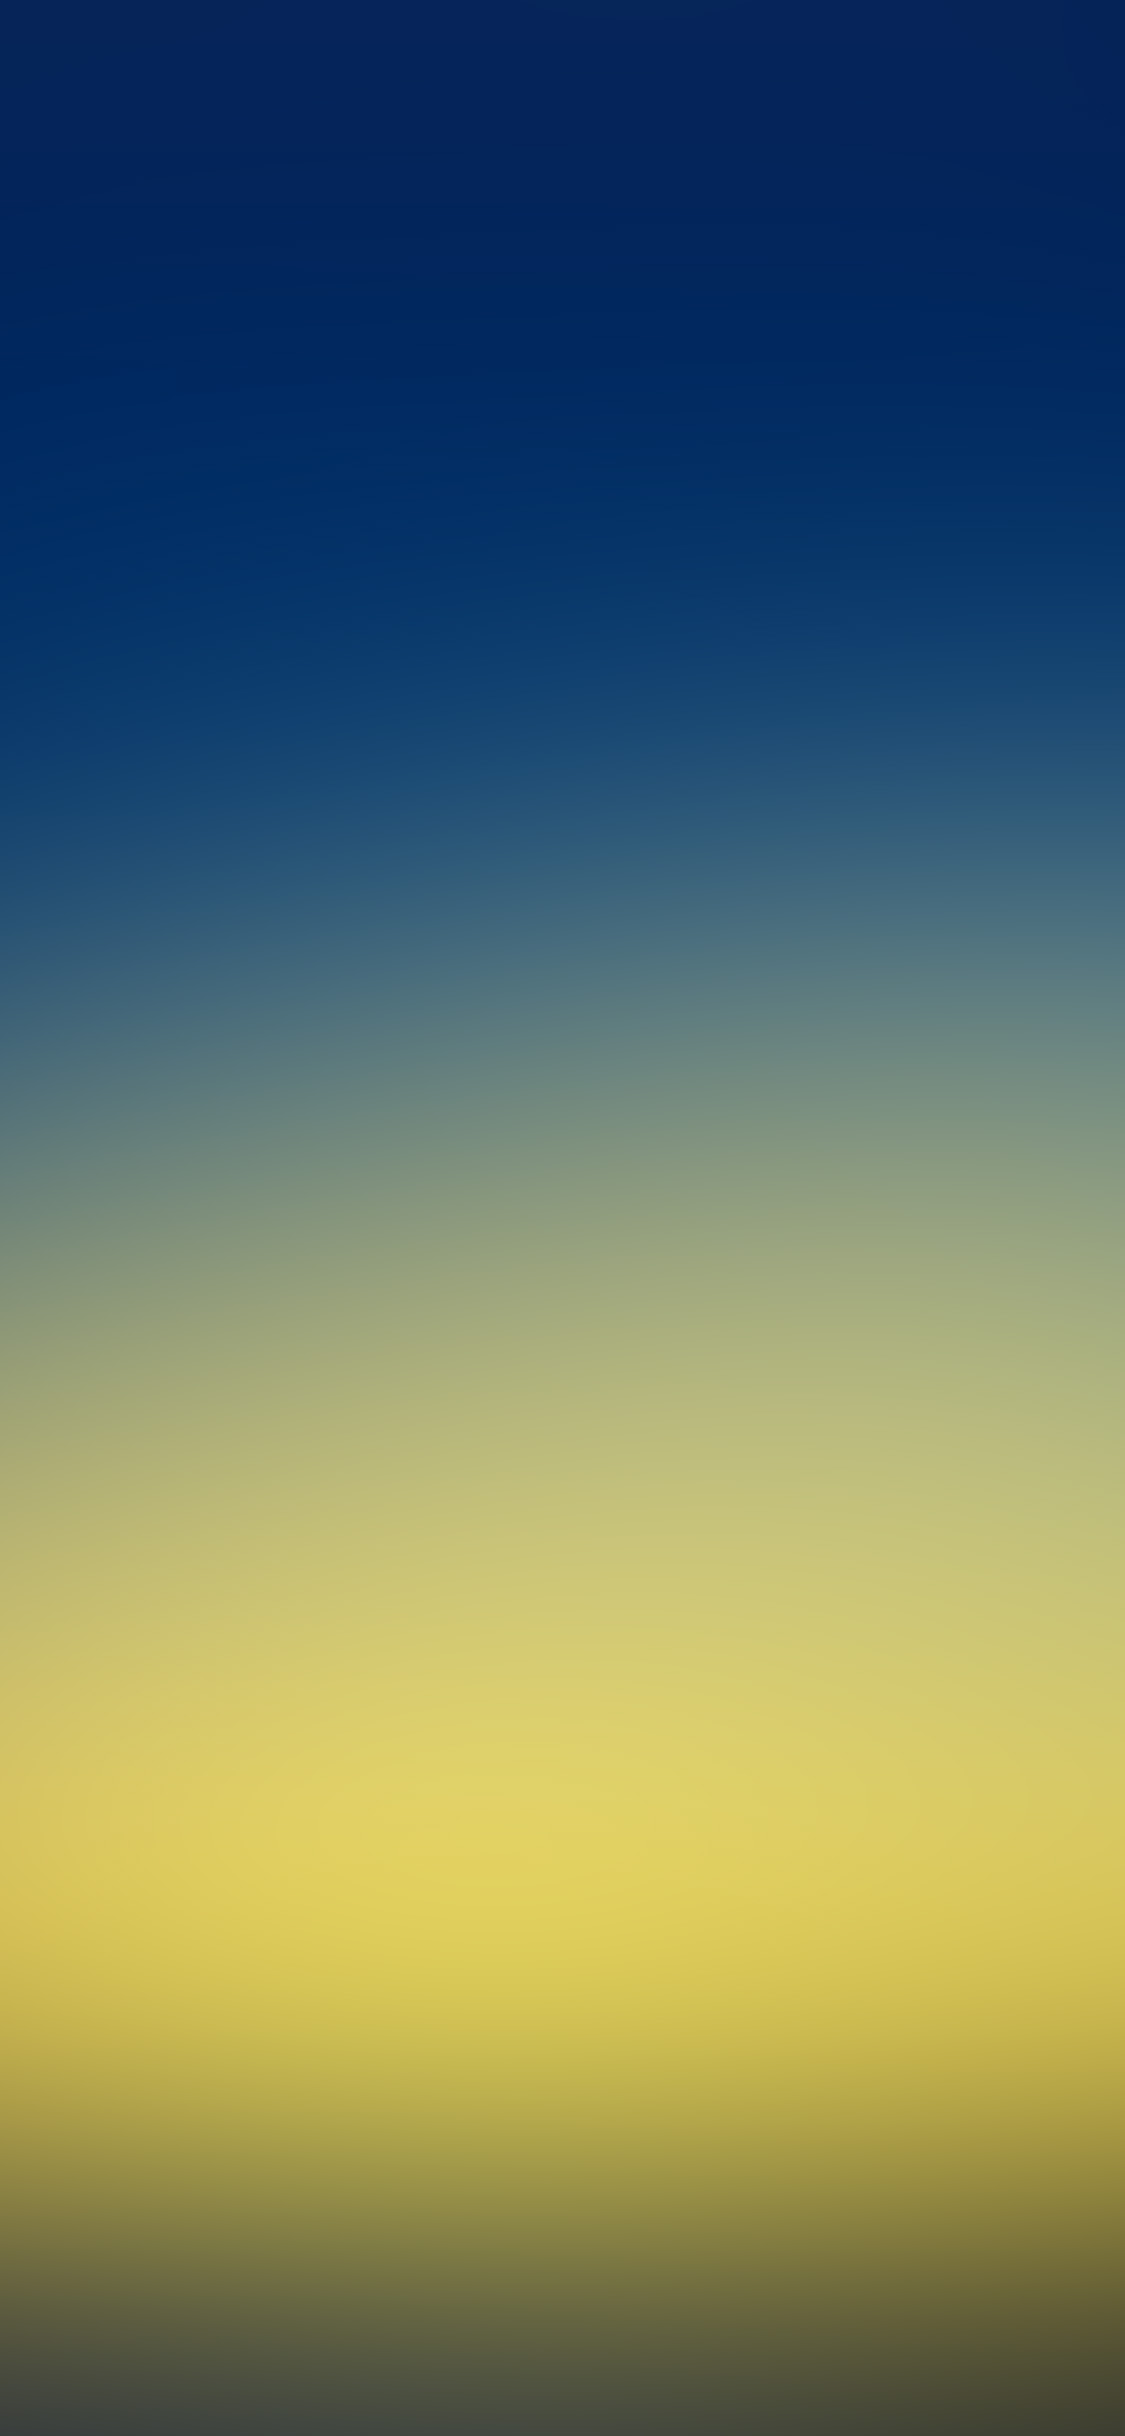 iPhonexpapers.com-Apple-iPhone-wallpaper-sm53-blue-sky-blur-gradation